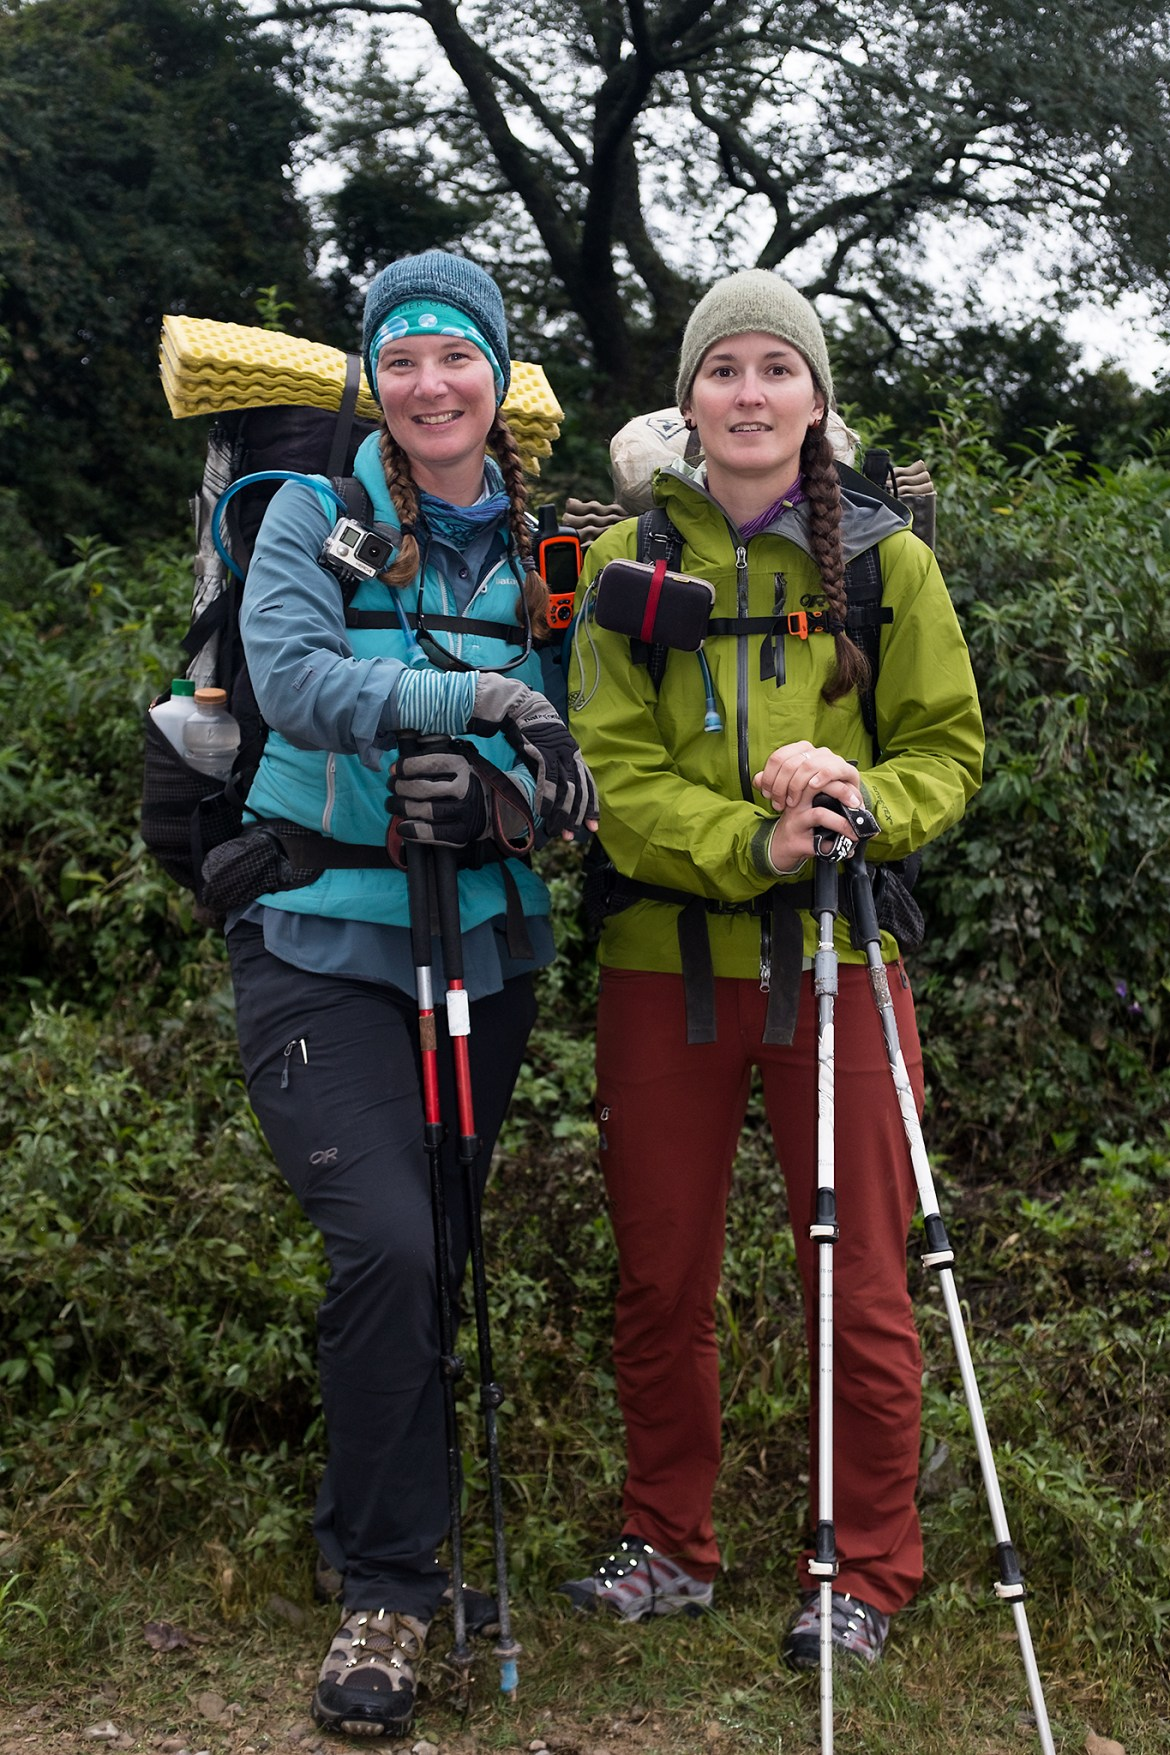 Fidgit (left) and Neon (right) smile for the camera with their backpacking gear. They're standing in front of a forest.